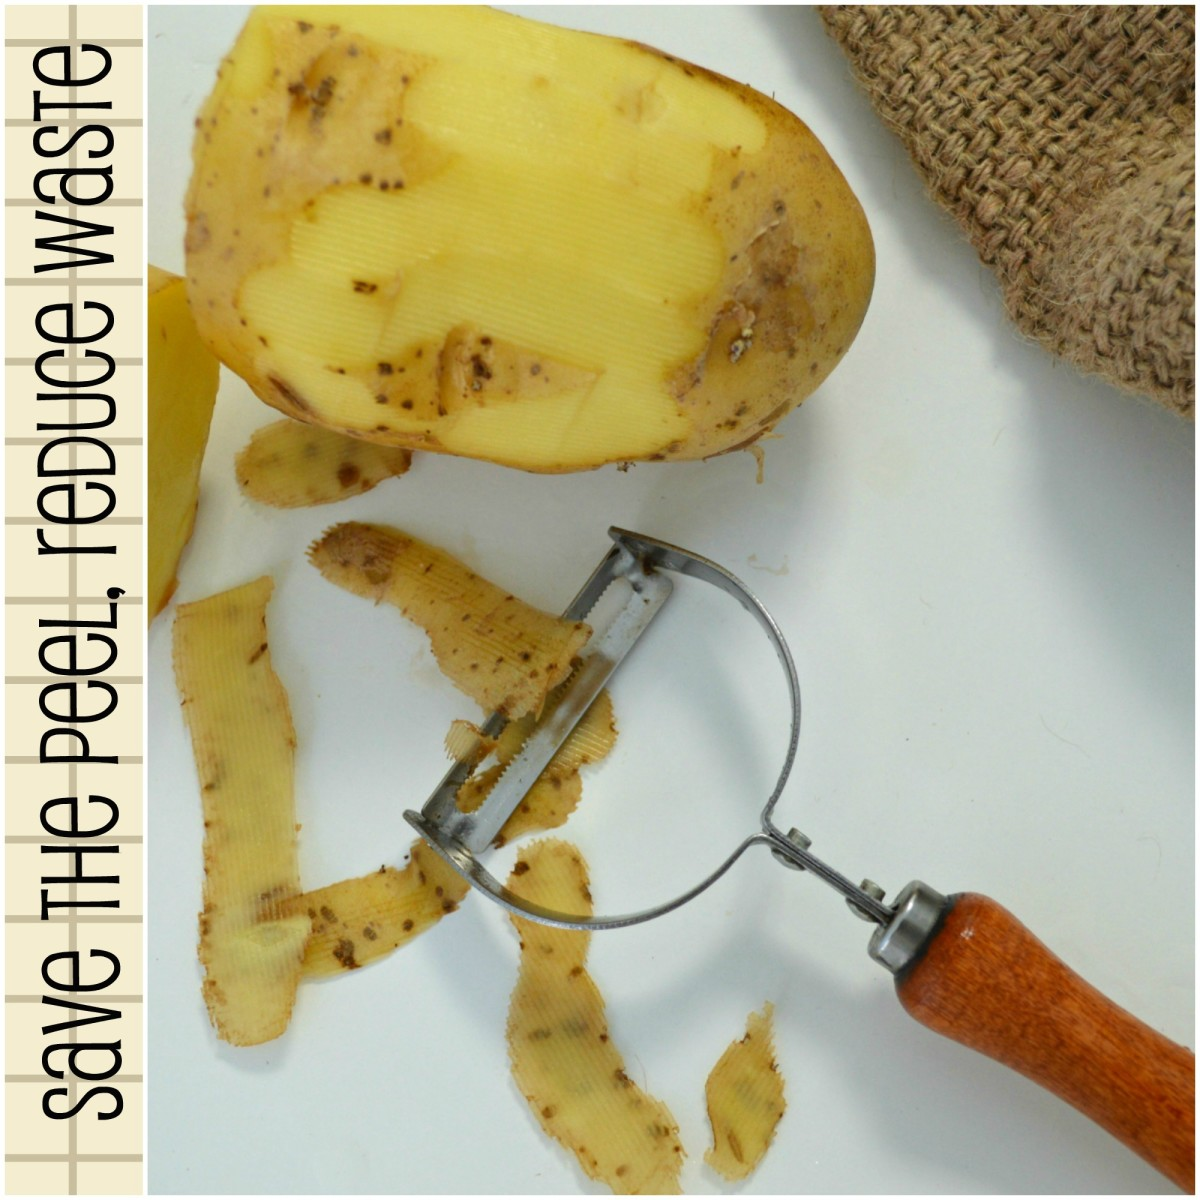 Peel potatoes with a knife or peeler, but whichever way, make sure you recycle them instead of tossing them into the bin!